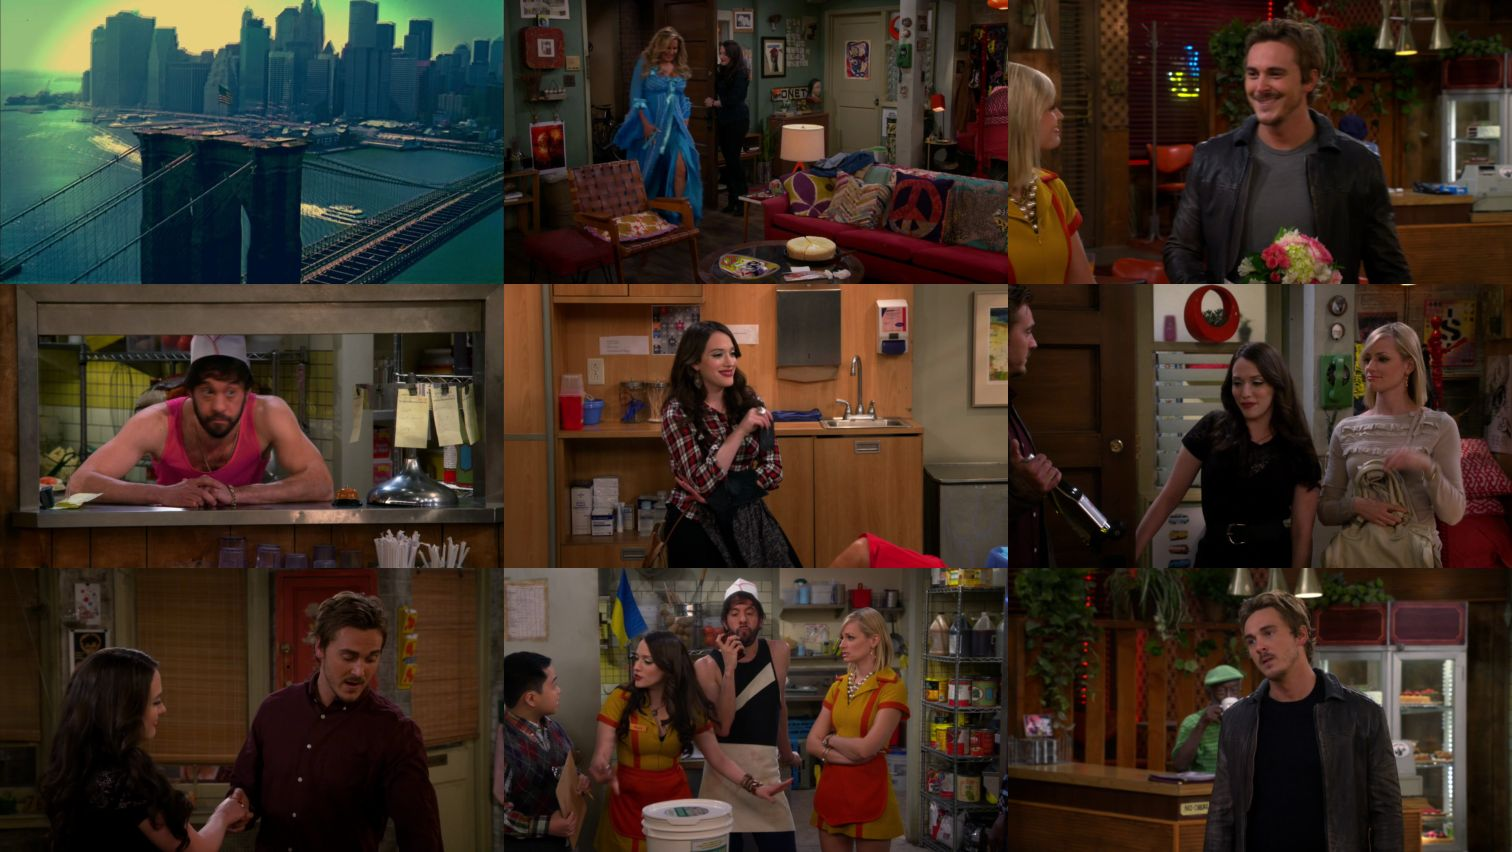 2 Broke Girls S05E06 HDTV x264-LOL